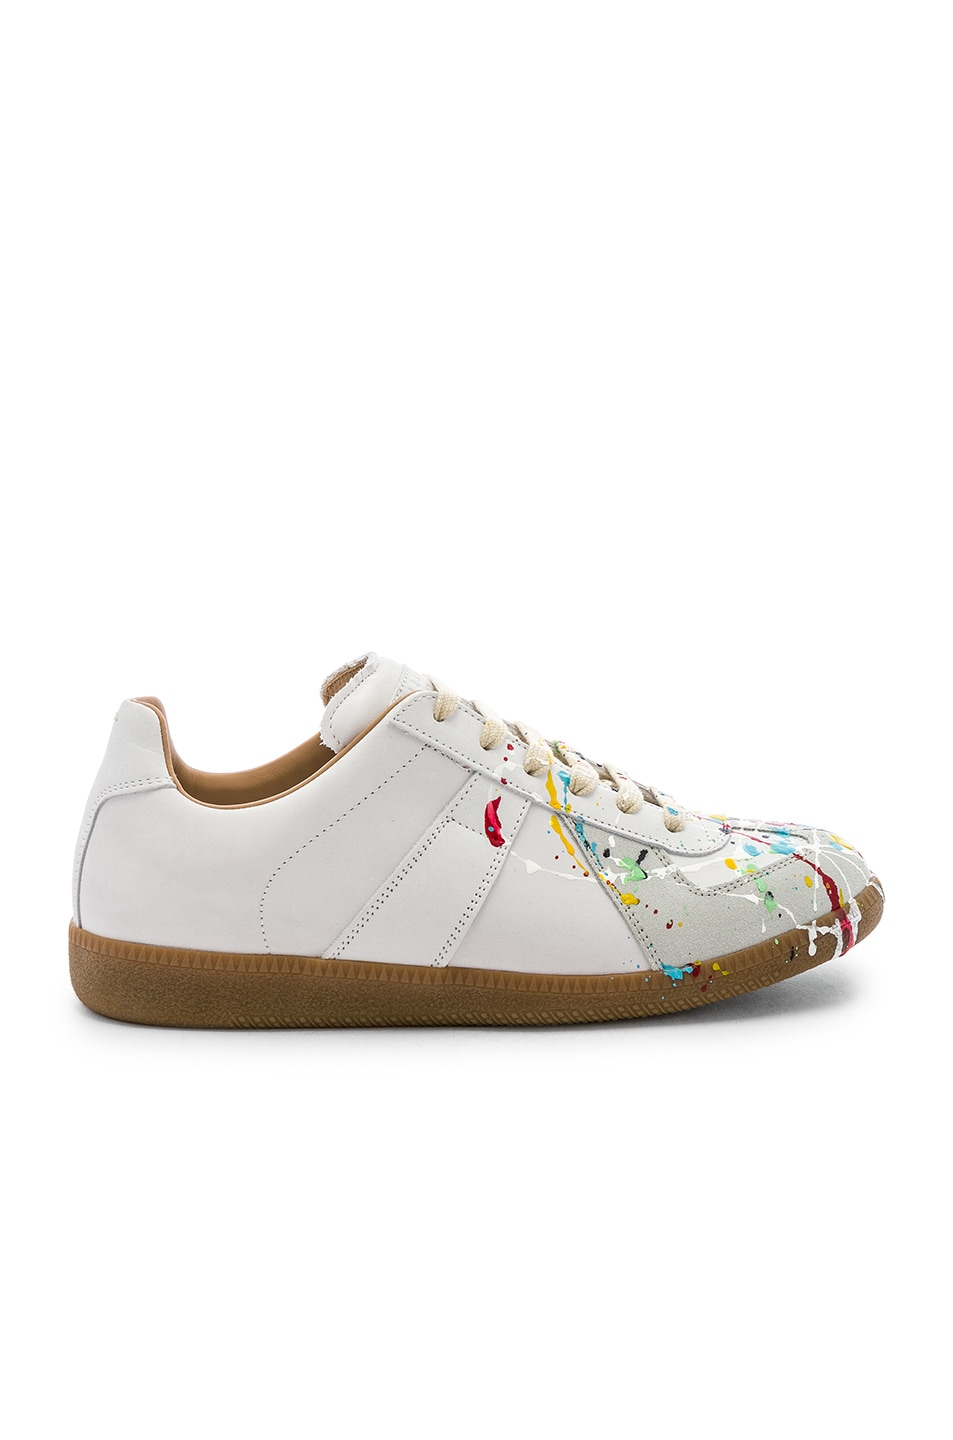 Image 2 of Maison Margiela Replica Low Top Painter in Off-White